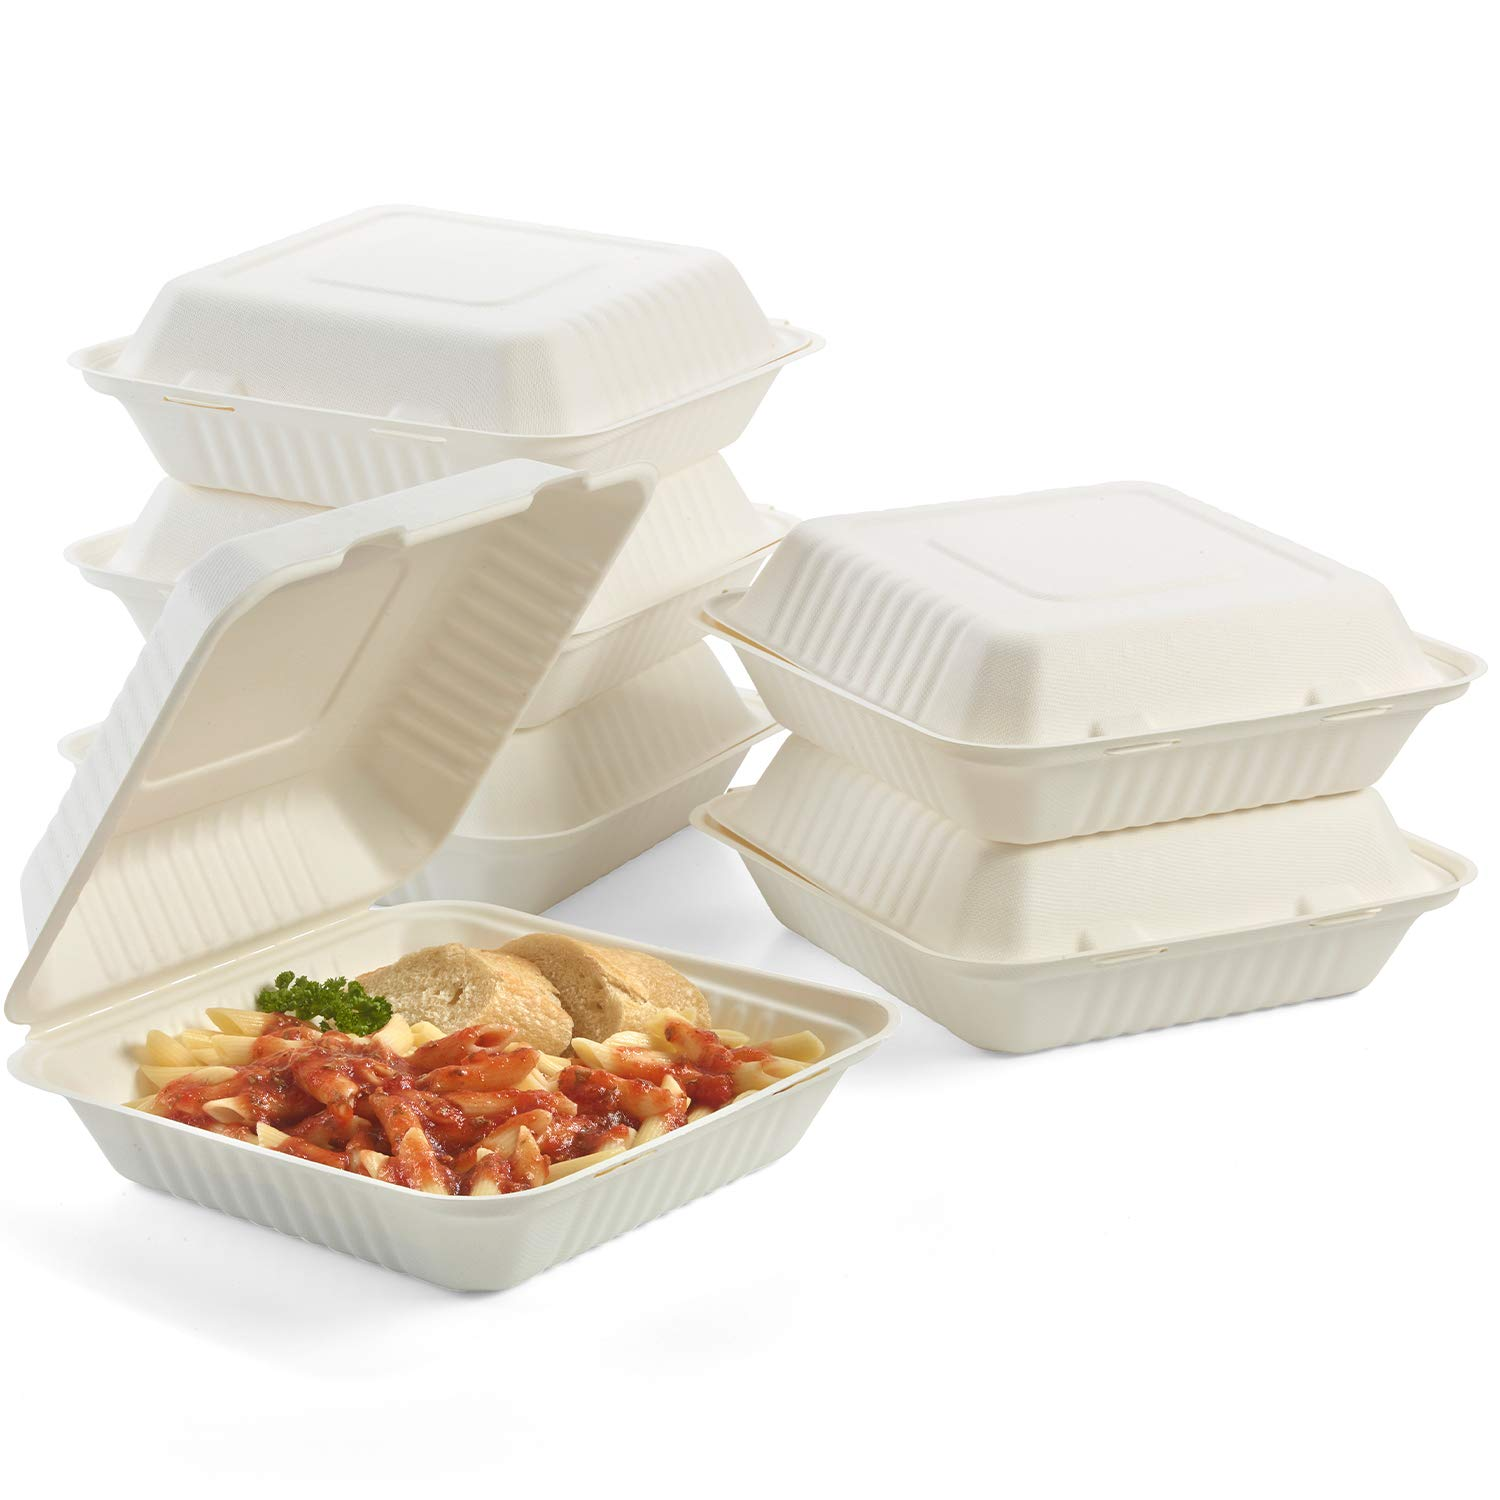 100% Compostable Clamshell To Go Boxes For Food [8X8